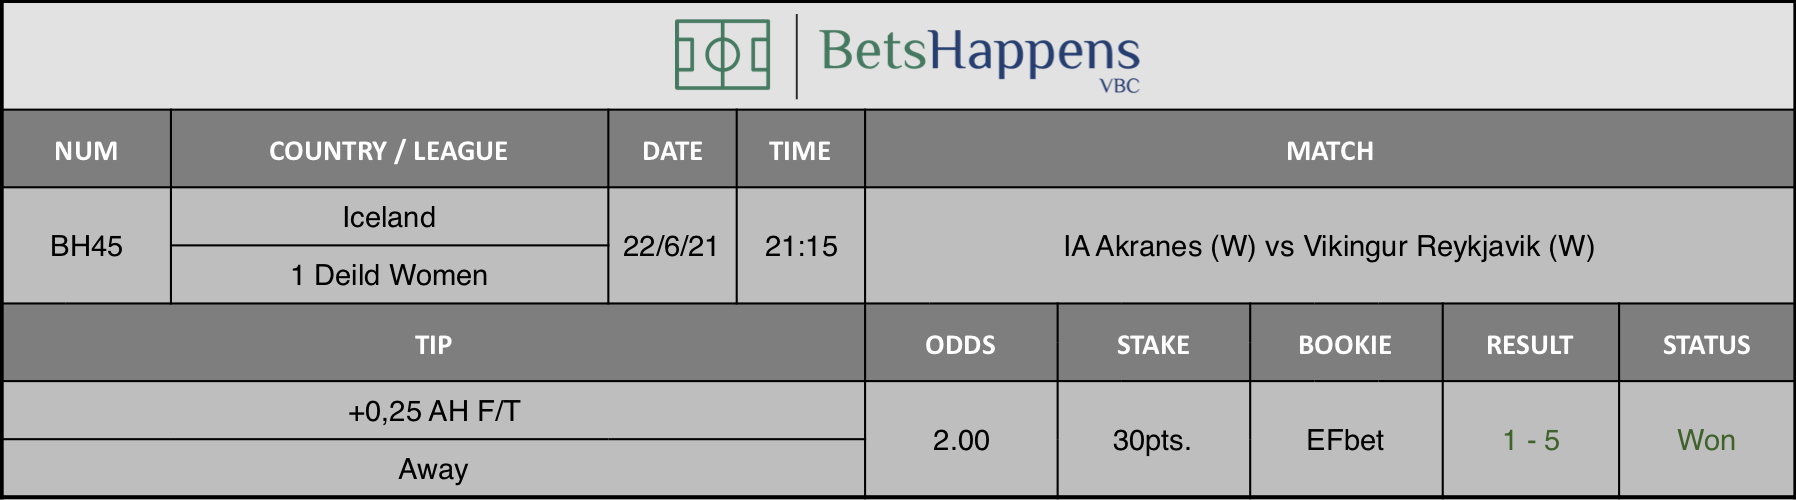 Results of our tip for the IA Akranes (W) vs Vikingur Reykjavik (W) match +0,25 AH F/T Away is recommended.